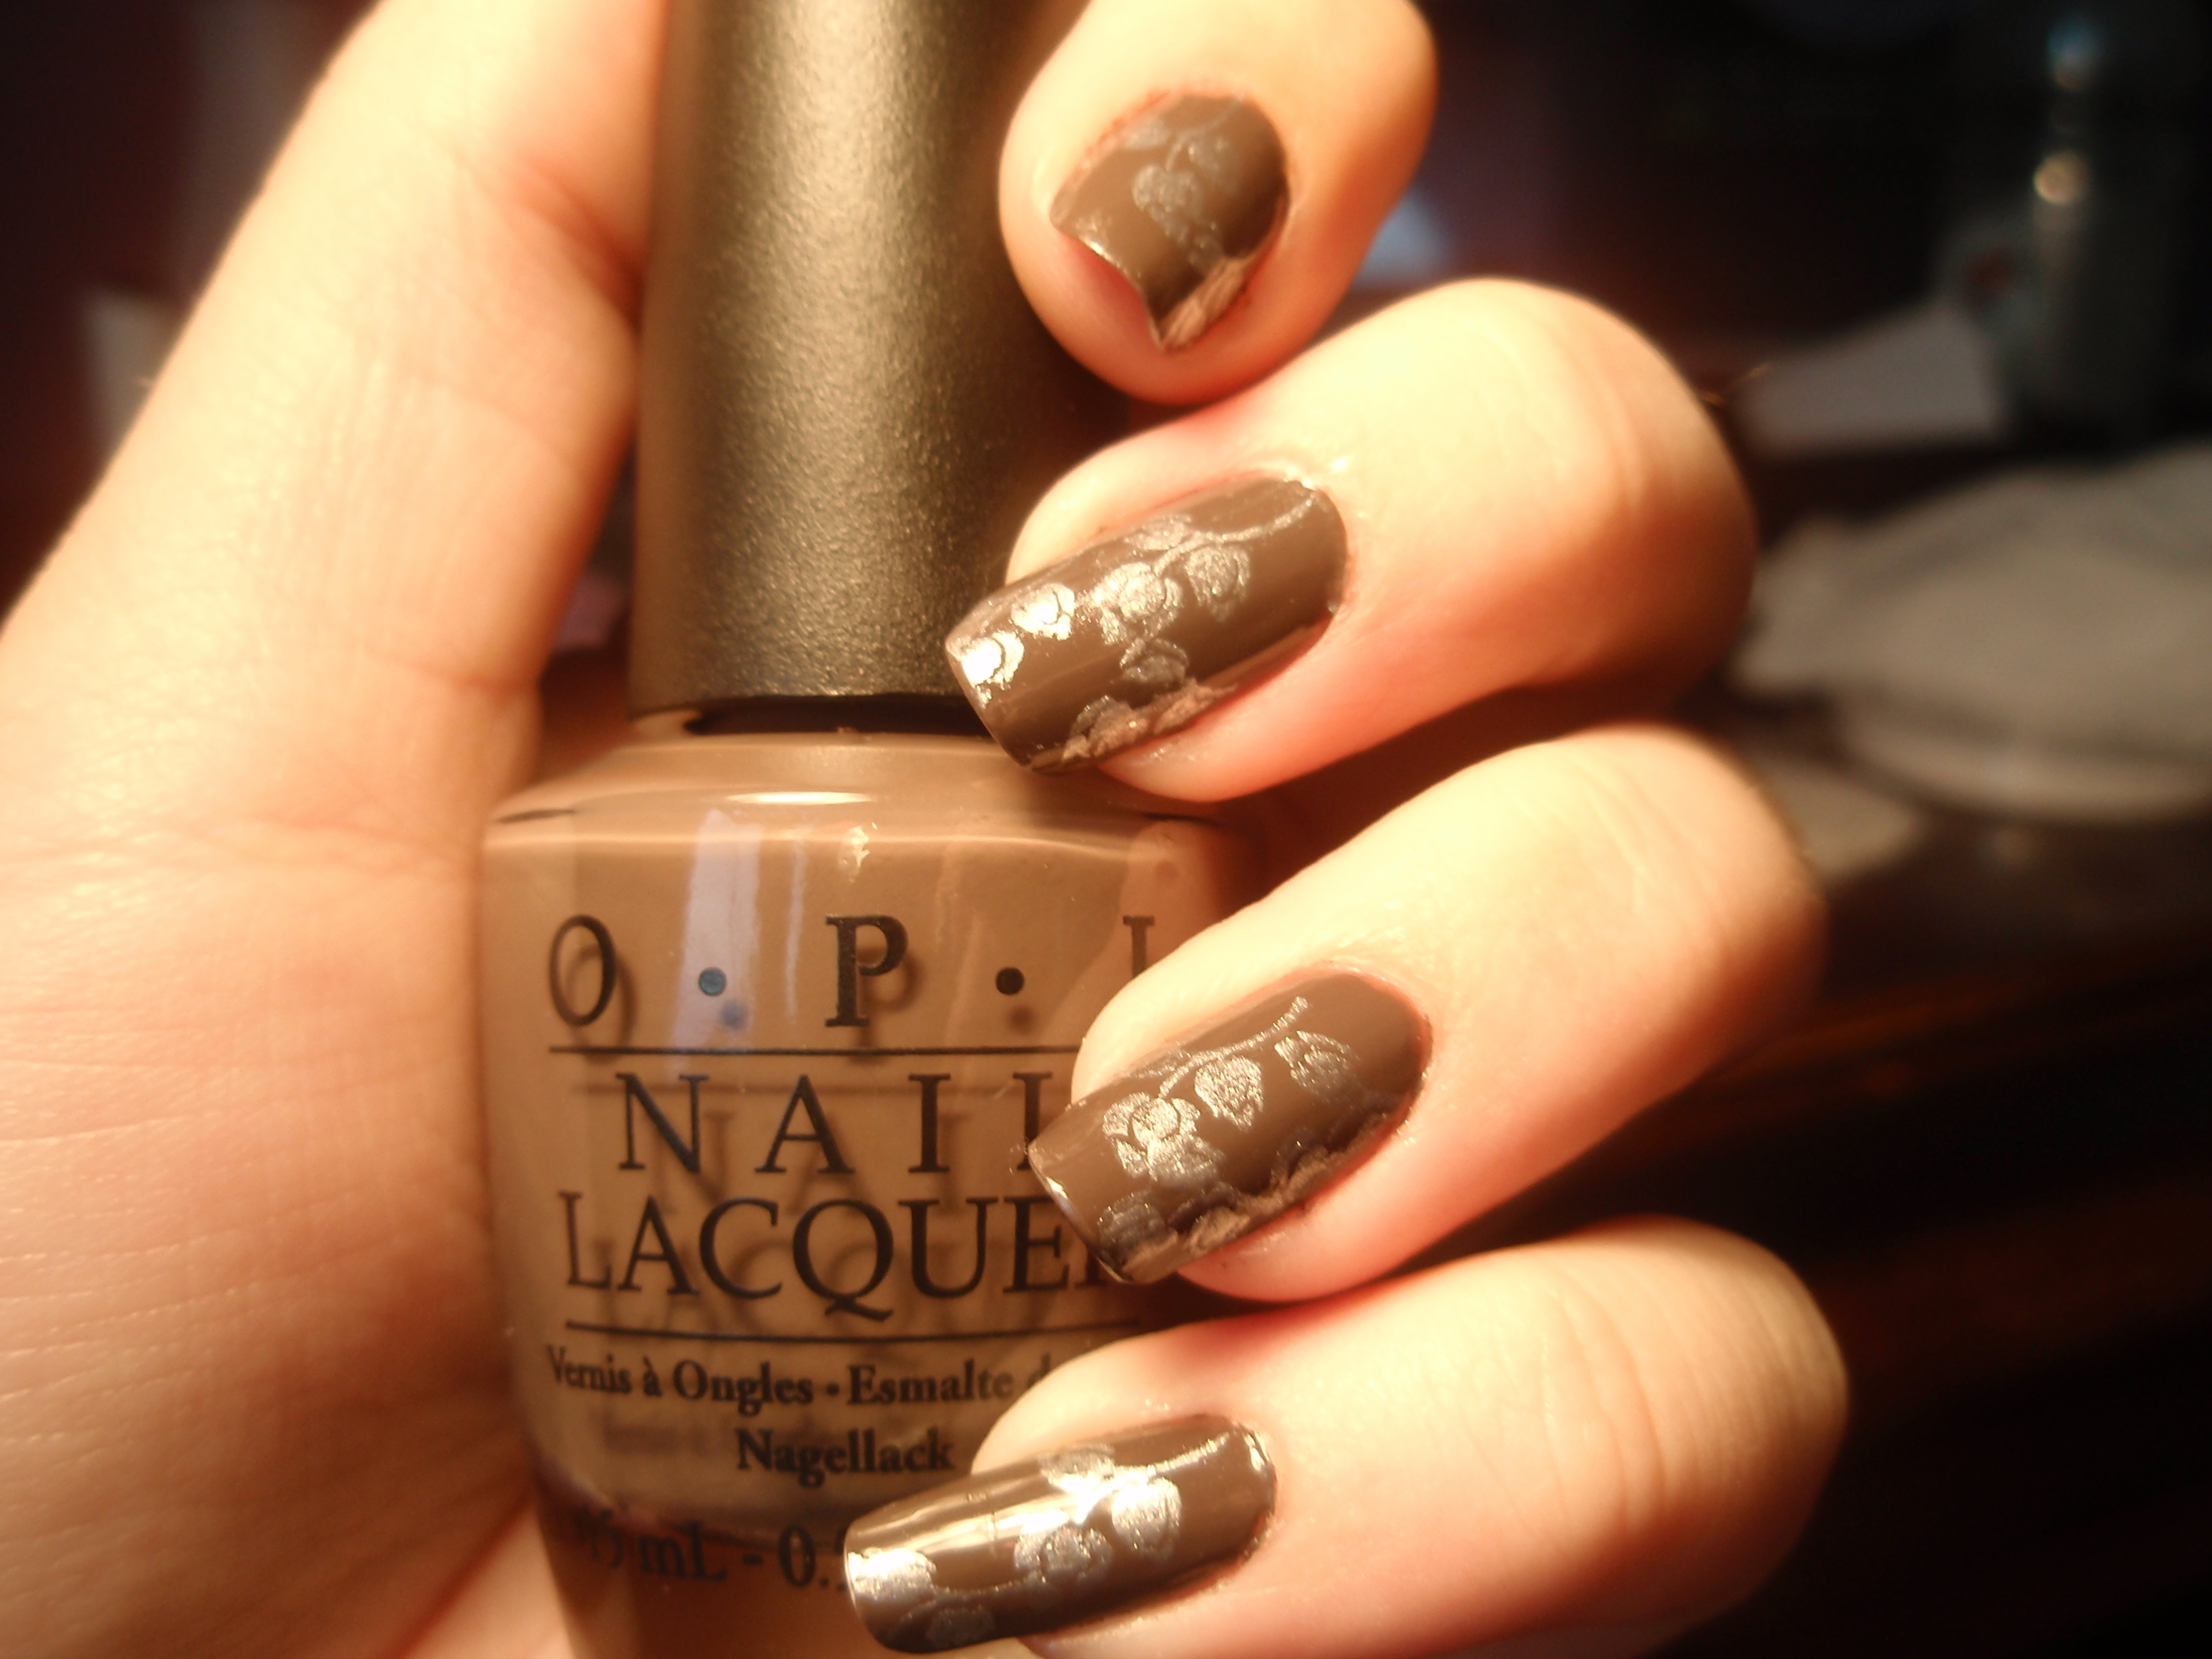 Chocogold vintage nail design 8 vintage style nail designs max size 3264 x 2448 prinsesfo Gallery